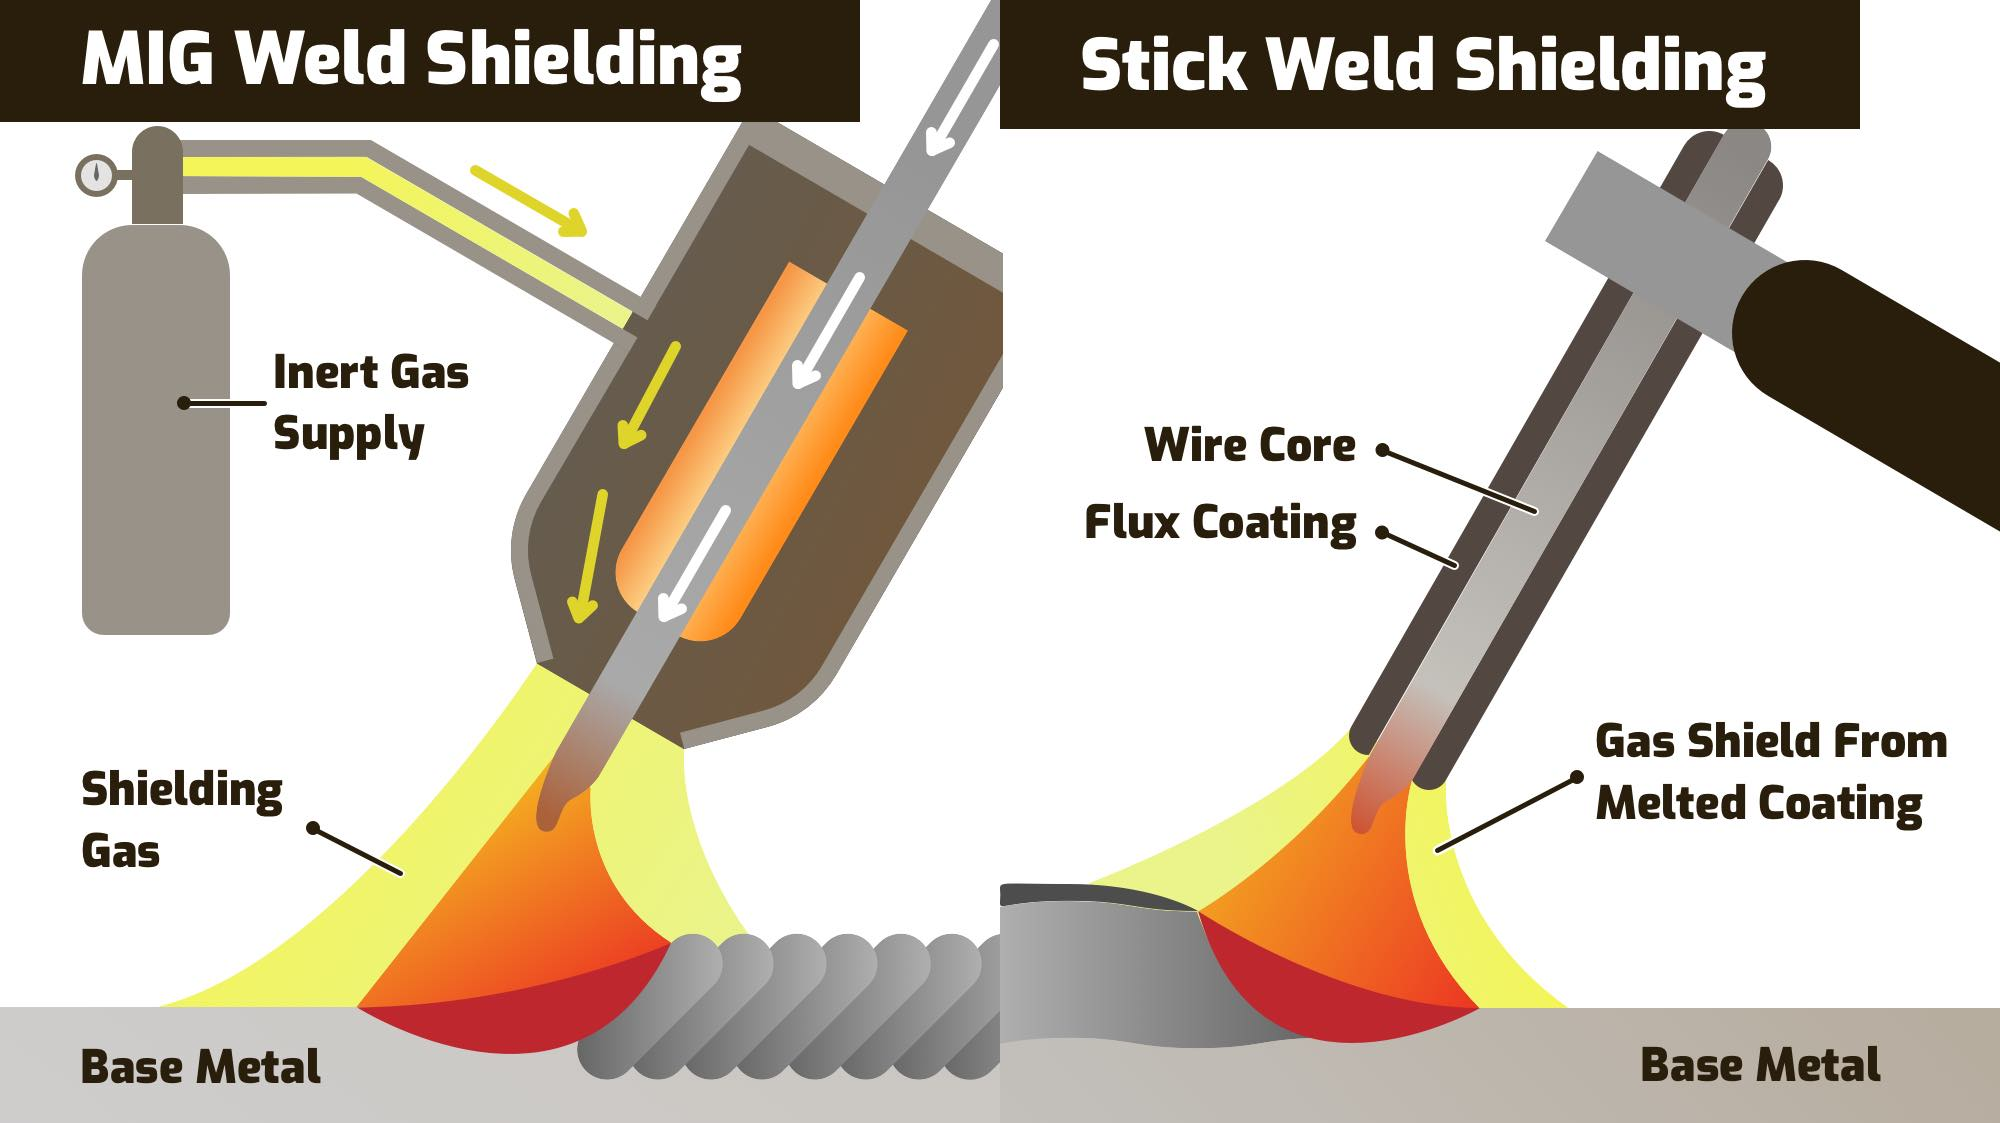 Shielding differences between MIG & Stick